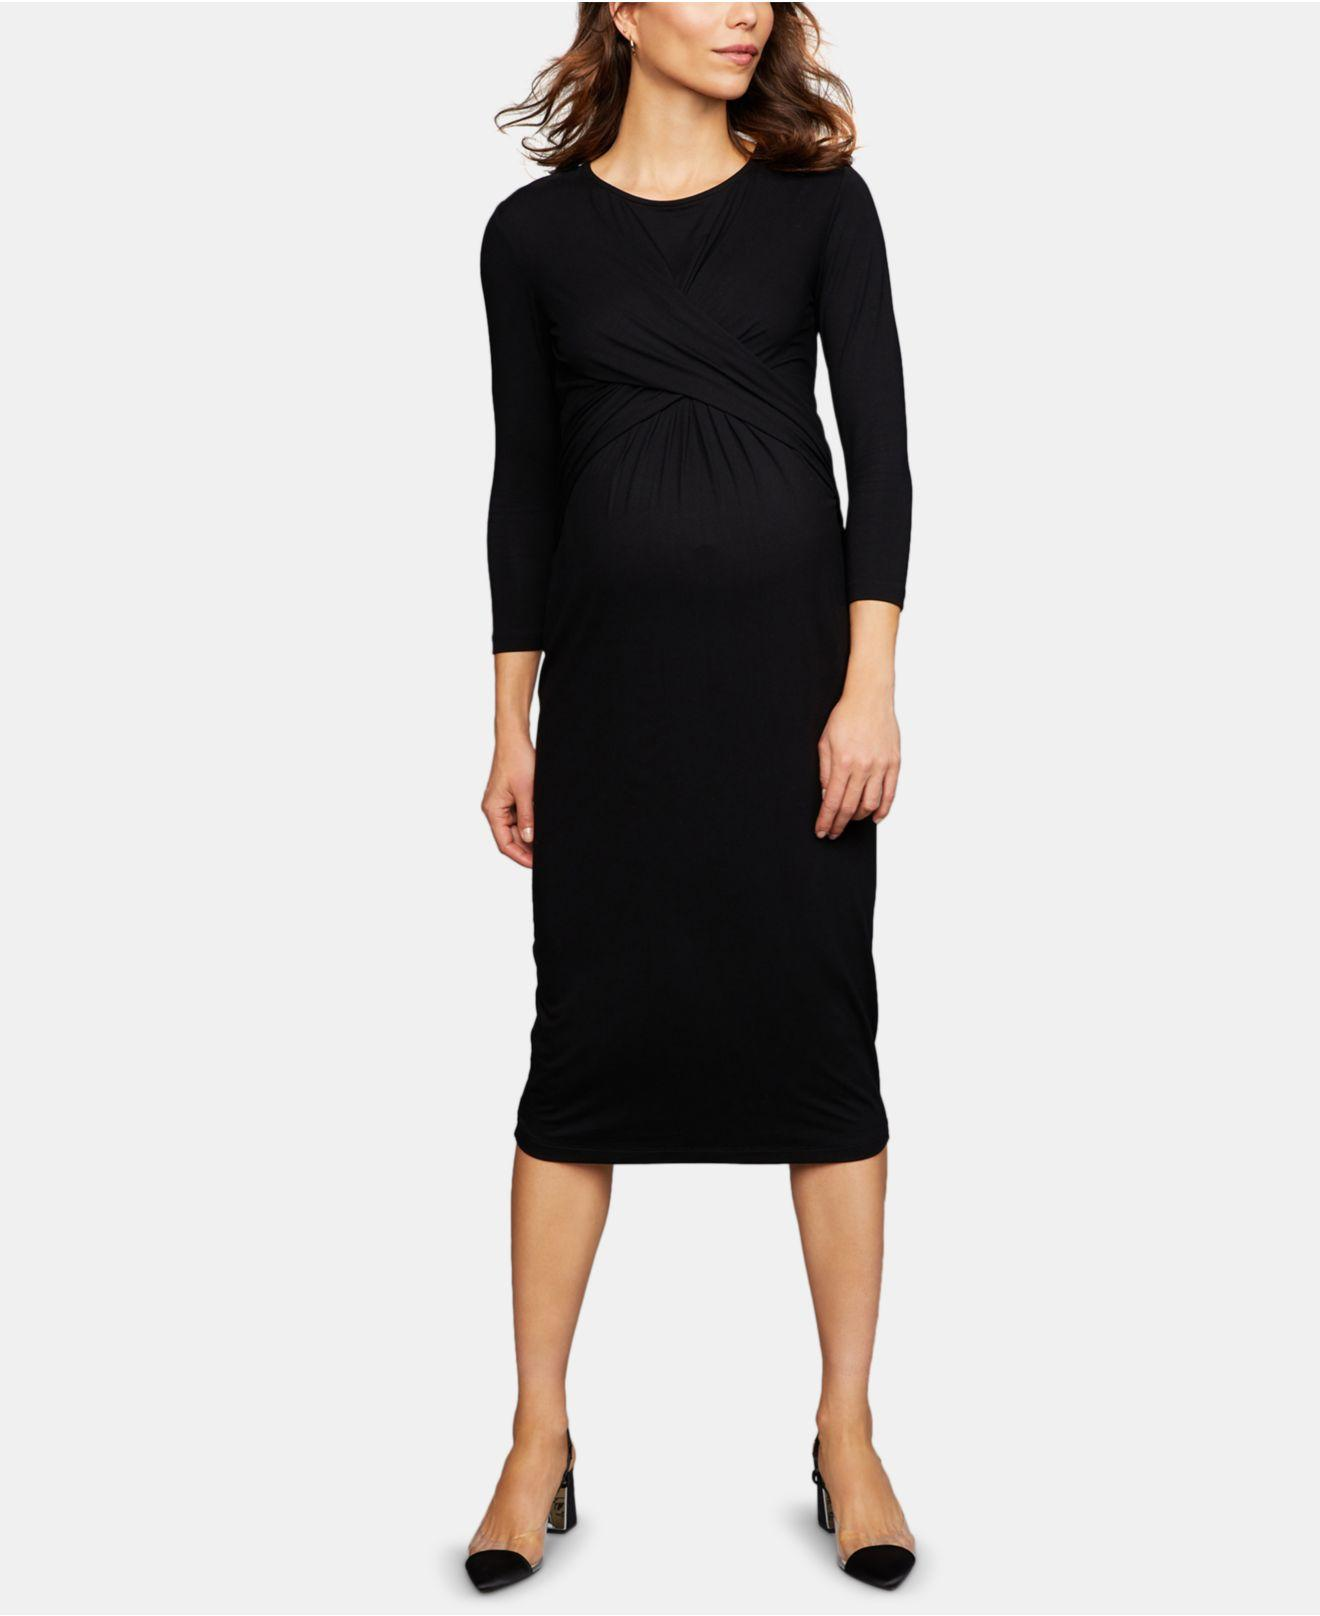 56d096a030e Lyst - Isabella Oliver Maternity Twist-front Dress in Black